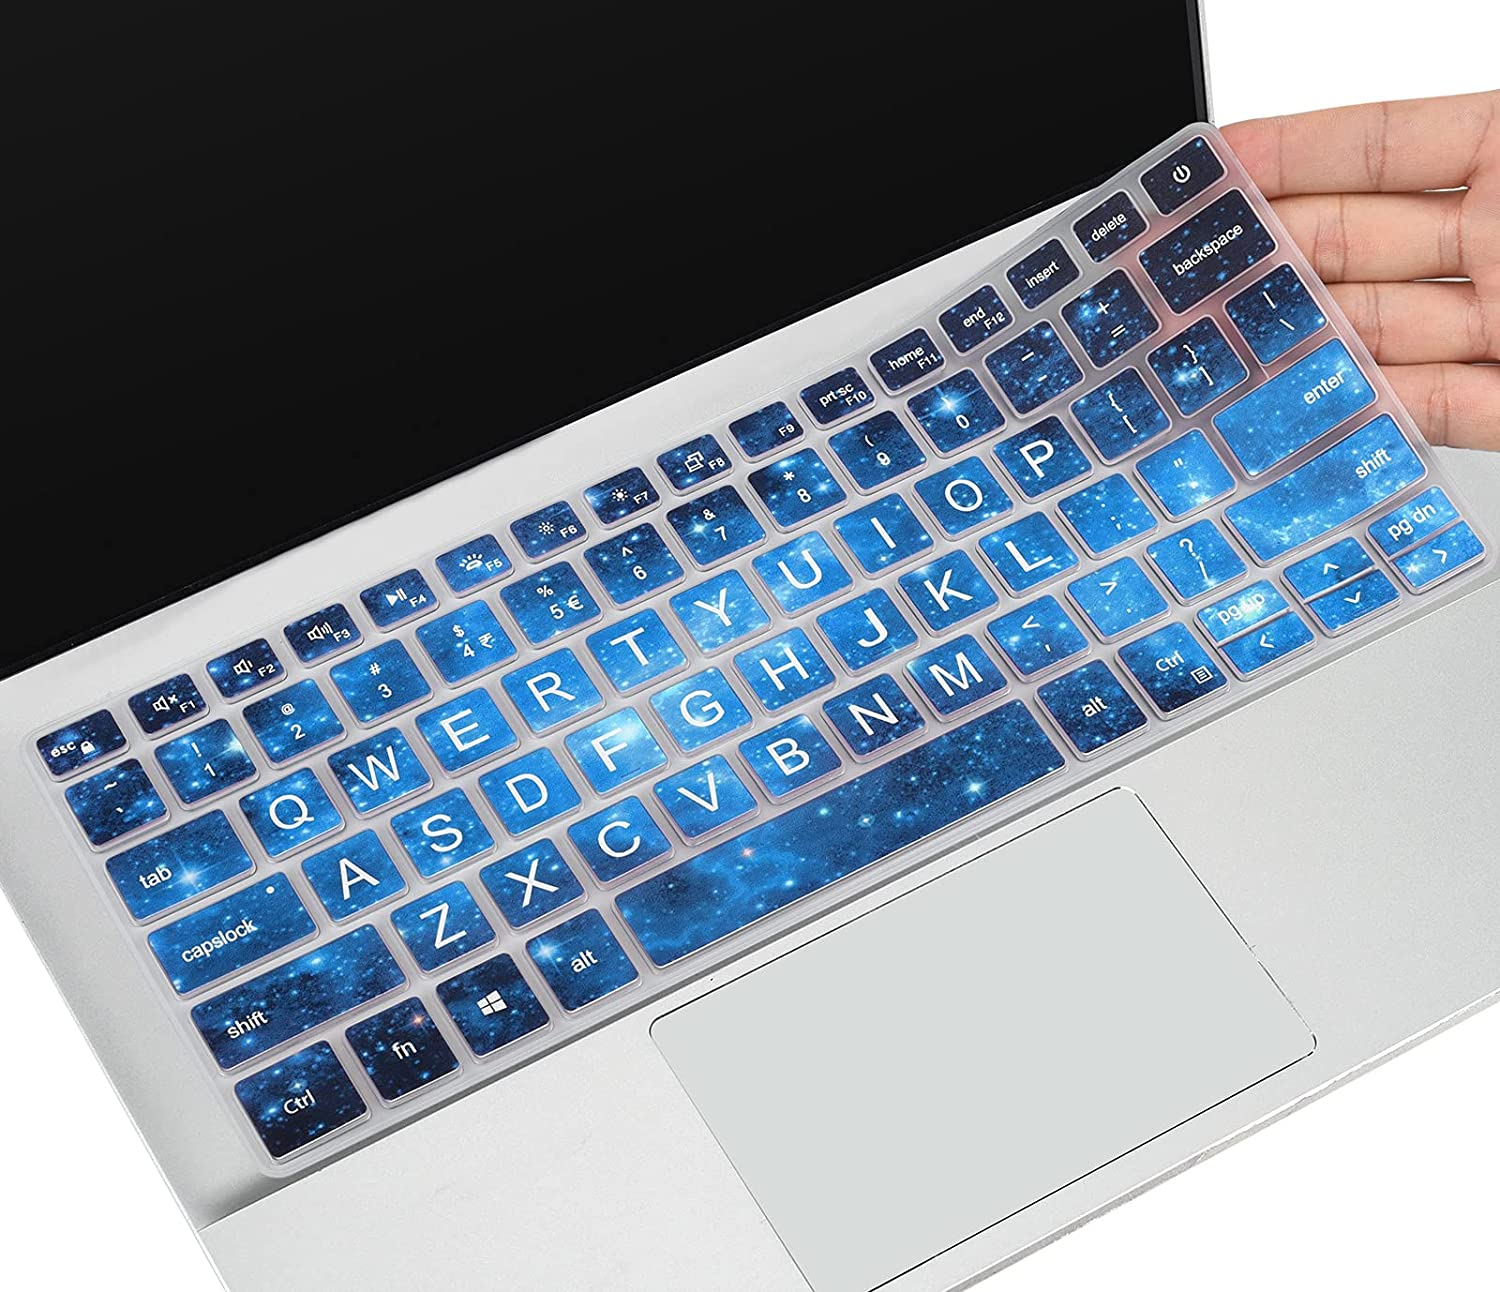 Keyboard Cover for New Dell Inspiron 13 14 5300 5301 5390 5391 7390 7391 7300 7306 5400 5402 5405 5406 5490 5493 5498 7405 7406 7490 / Dell Vostro 13 14 5301 5390 5391 5490 5401 5402, Blue Star